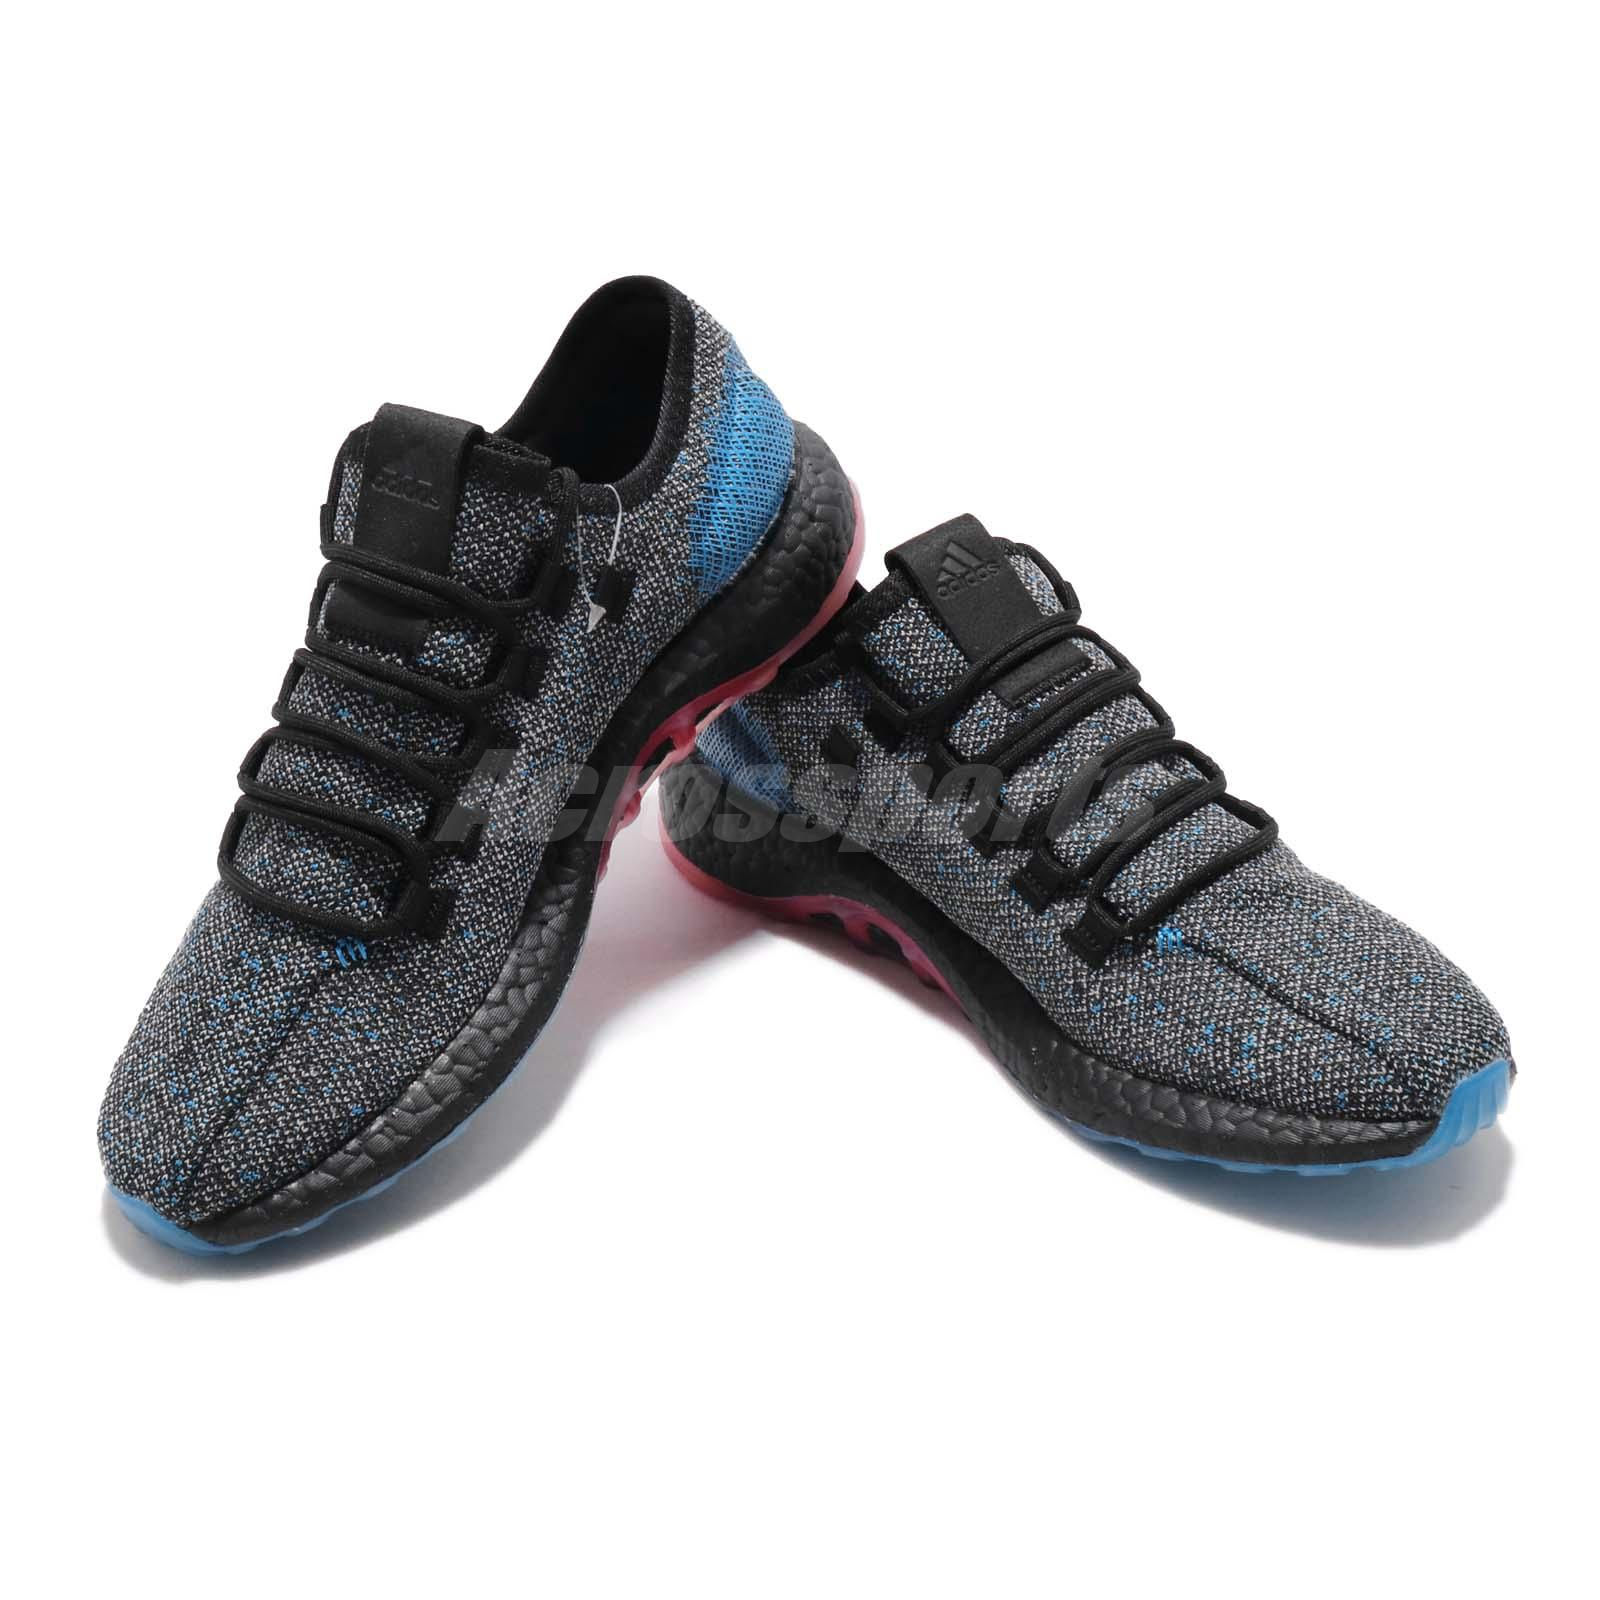 f020d3a73ae8c adidas PureBOOST LTD Black Blue Reflective BOOST Mens Running Shoes ...